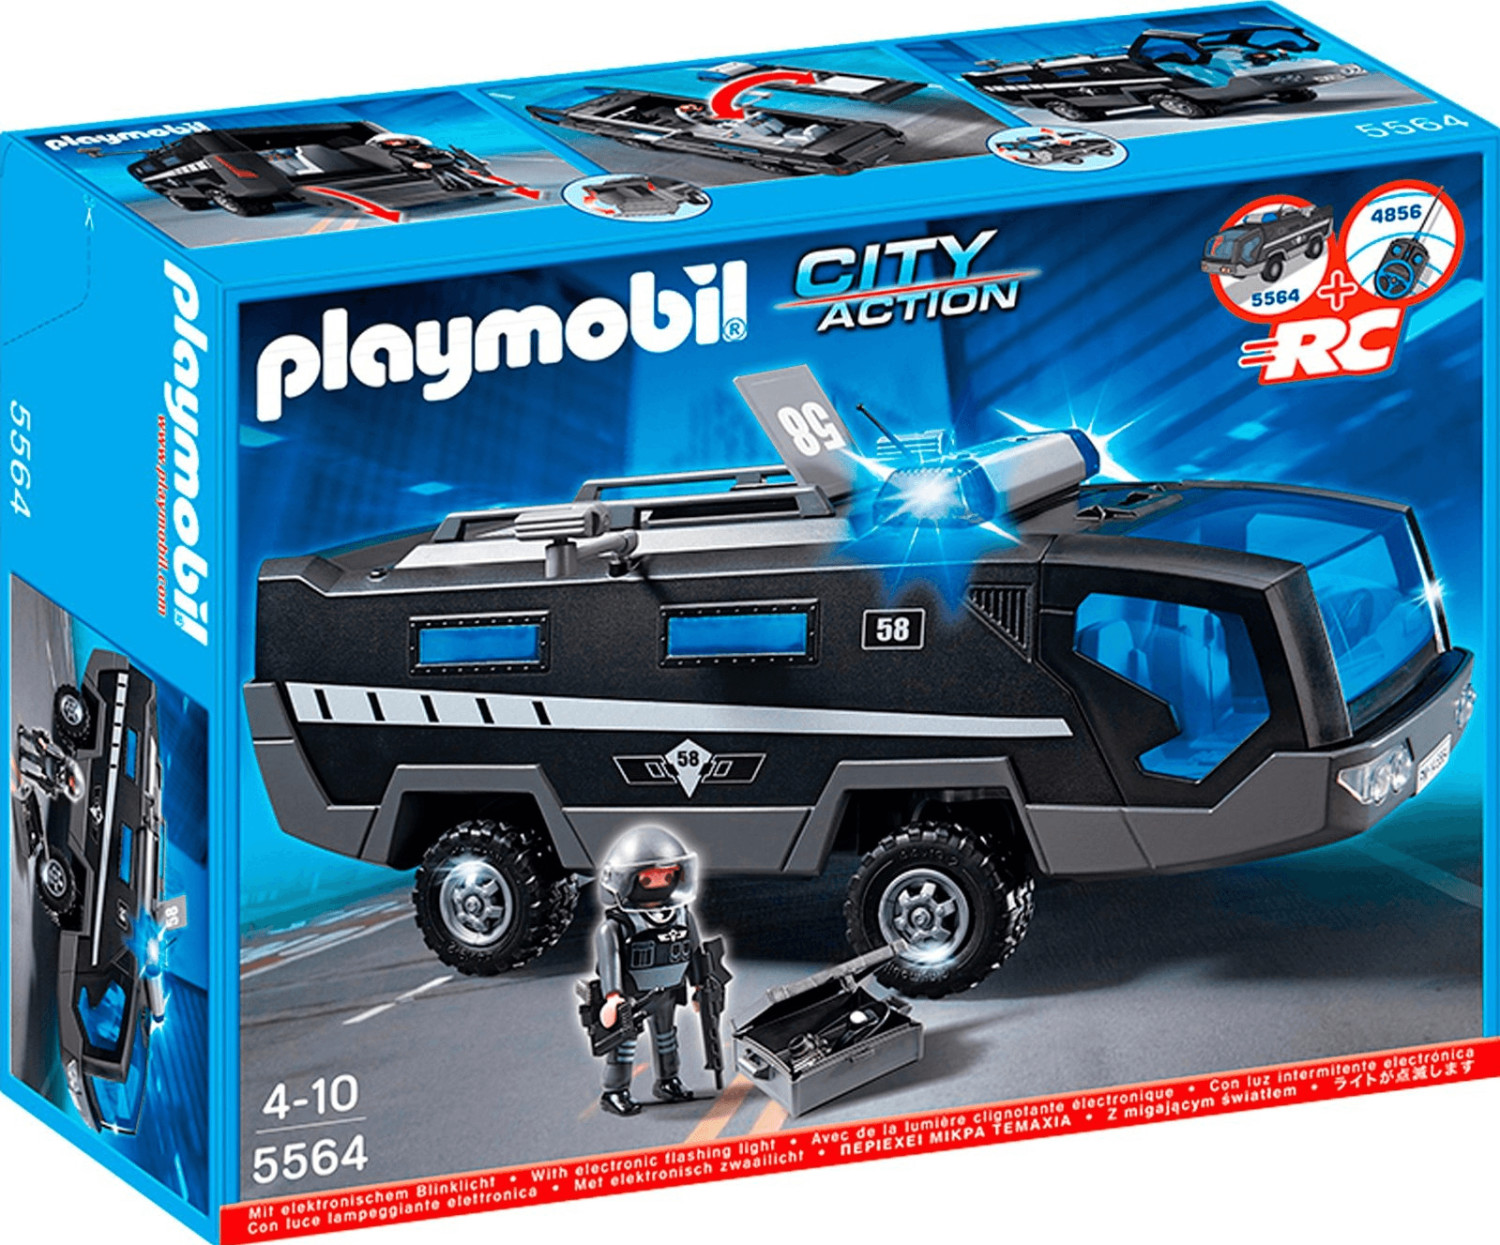 Playmobil 5564 City Action. Police véhicule d'intervention en boite, NEUF